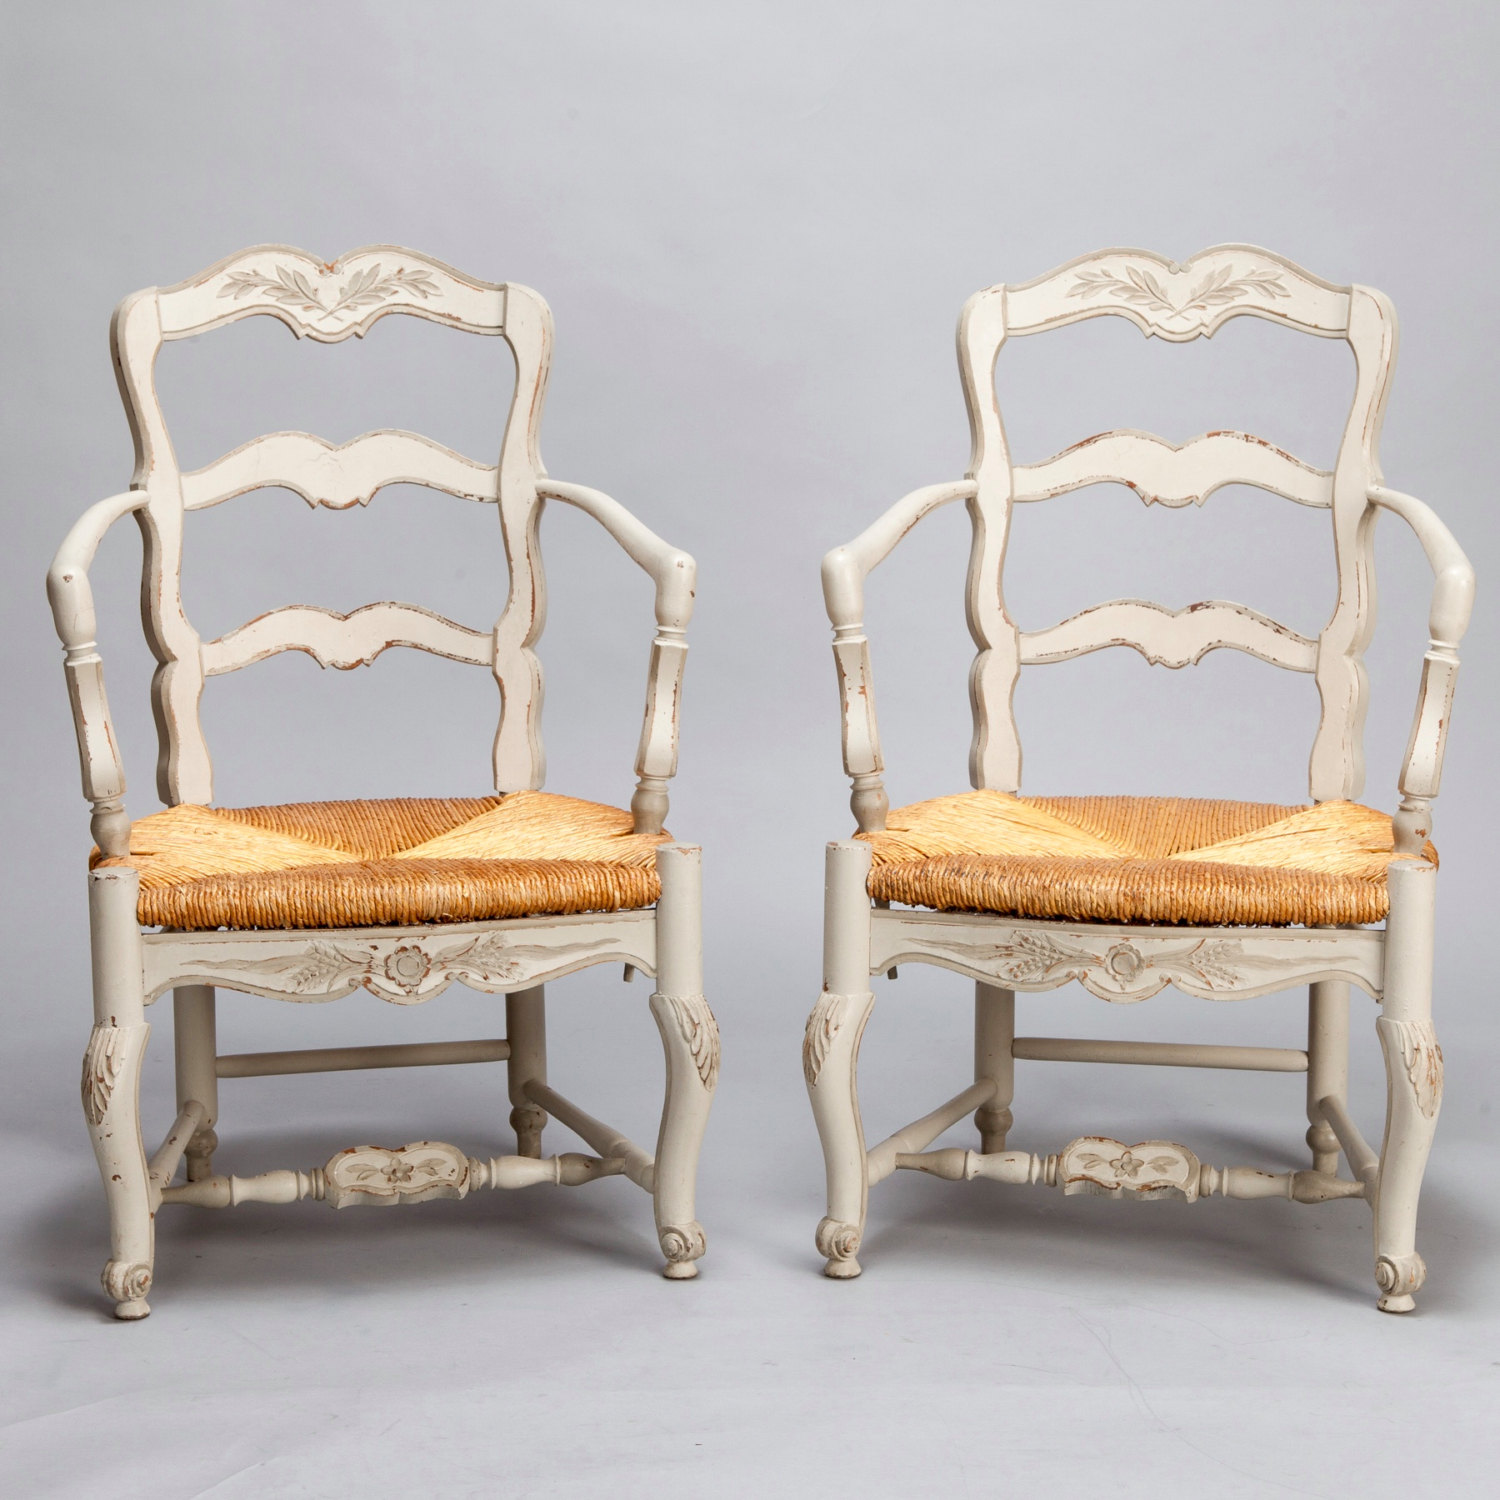 Vintage Armchairs With Rush Seats